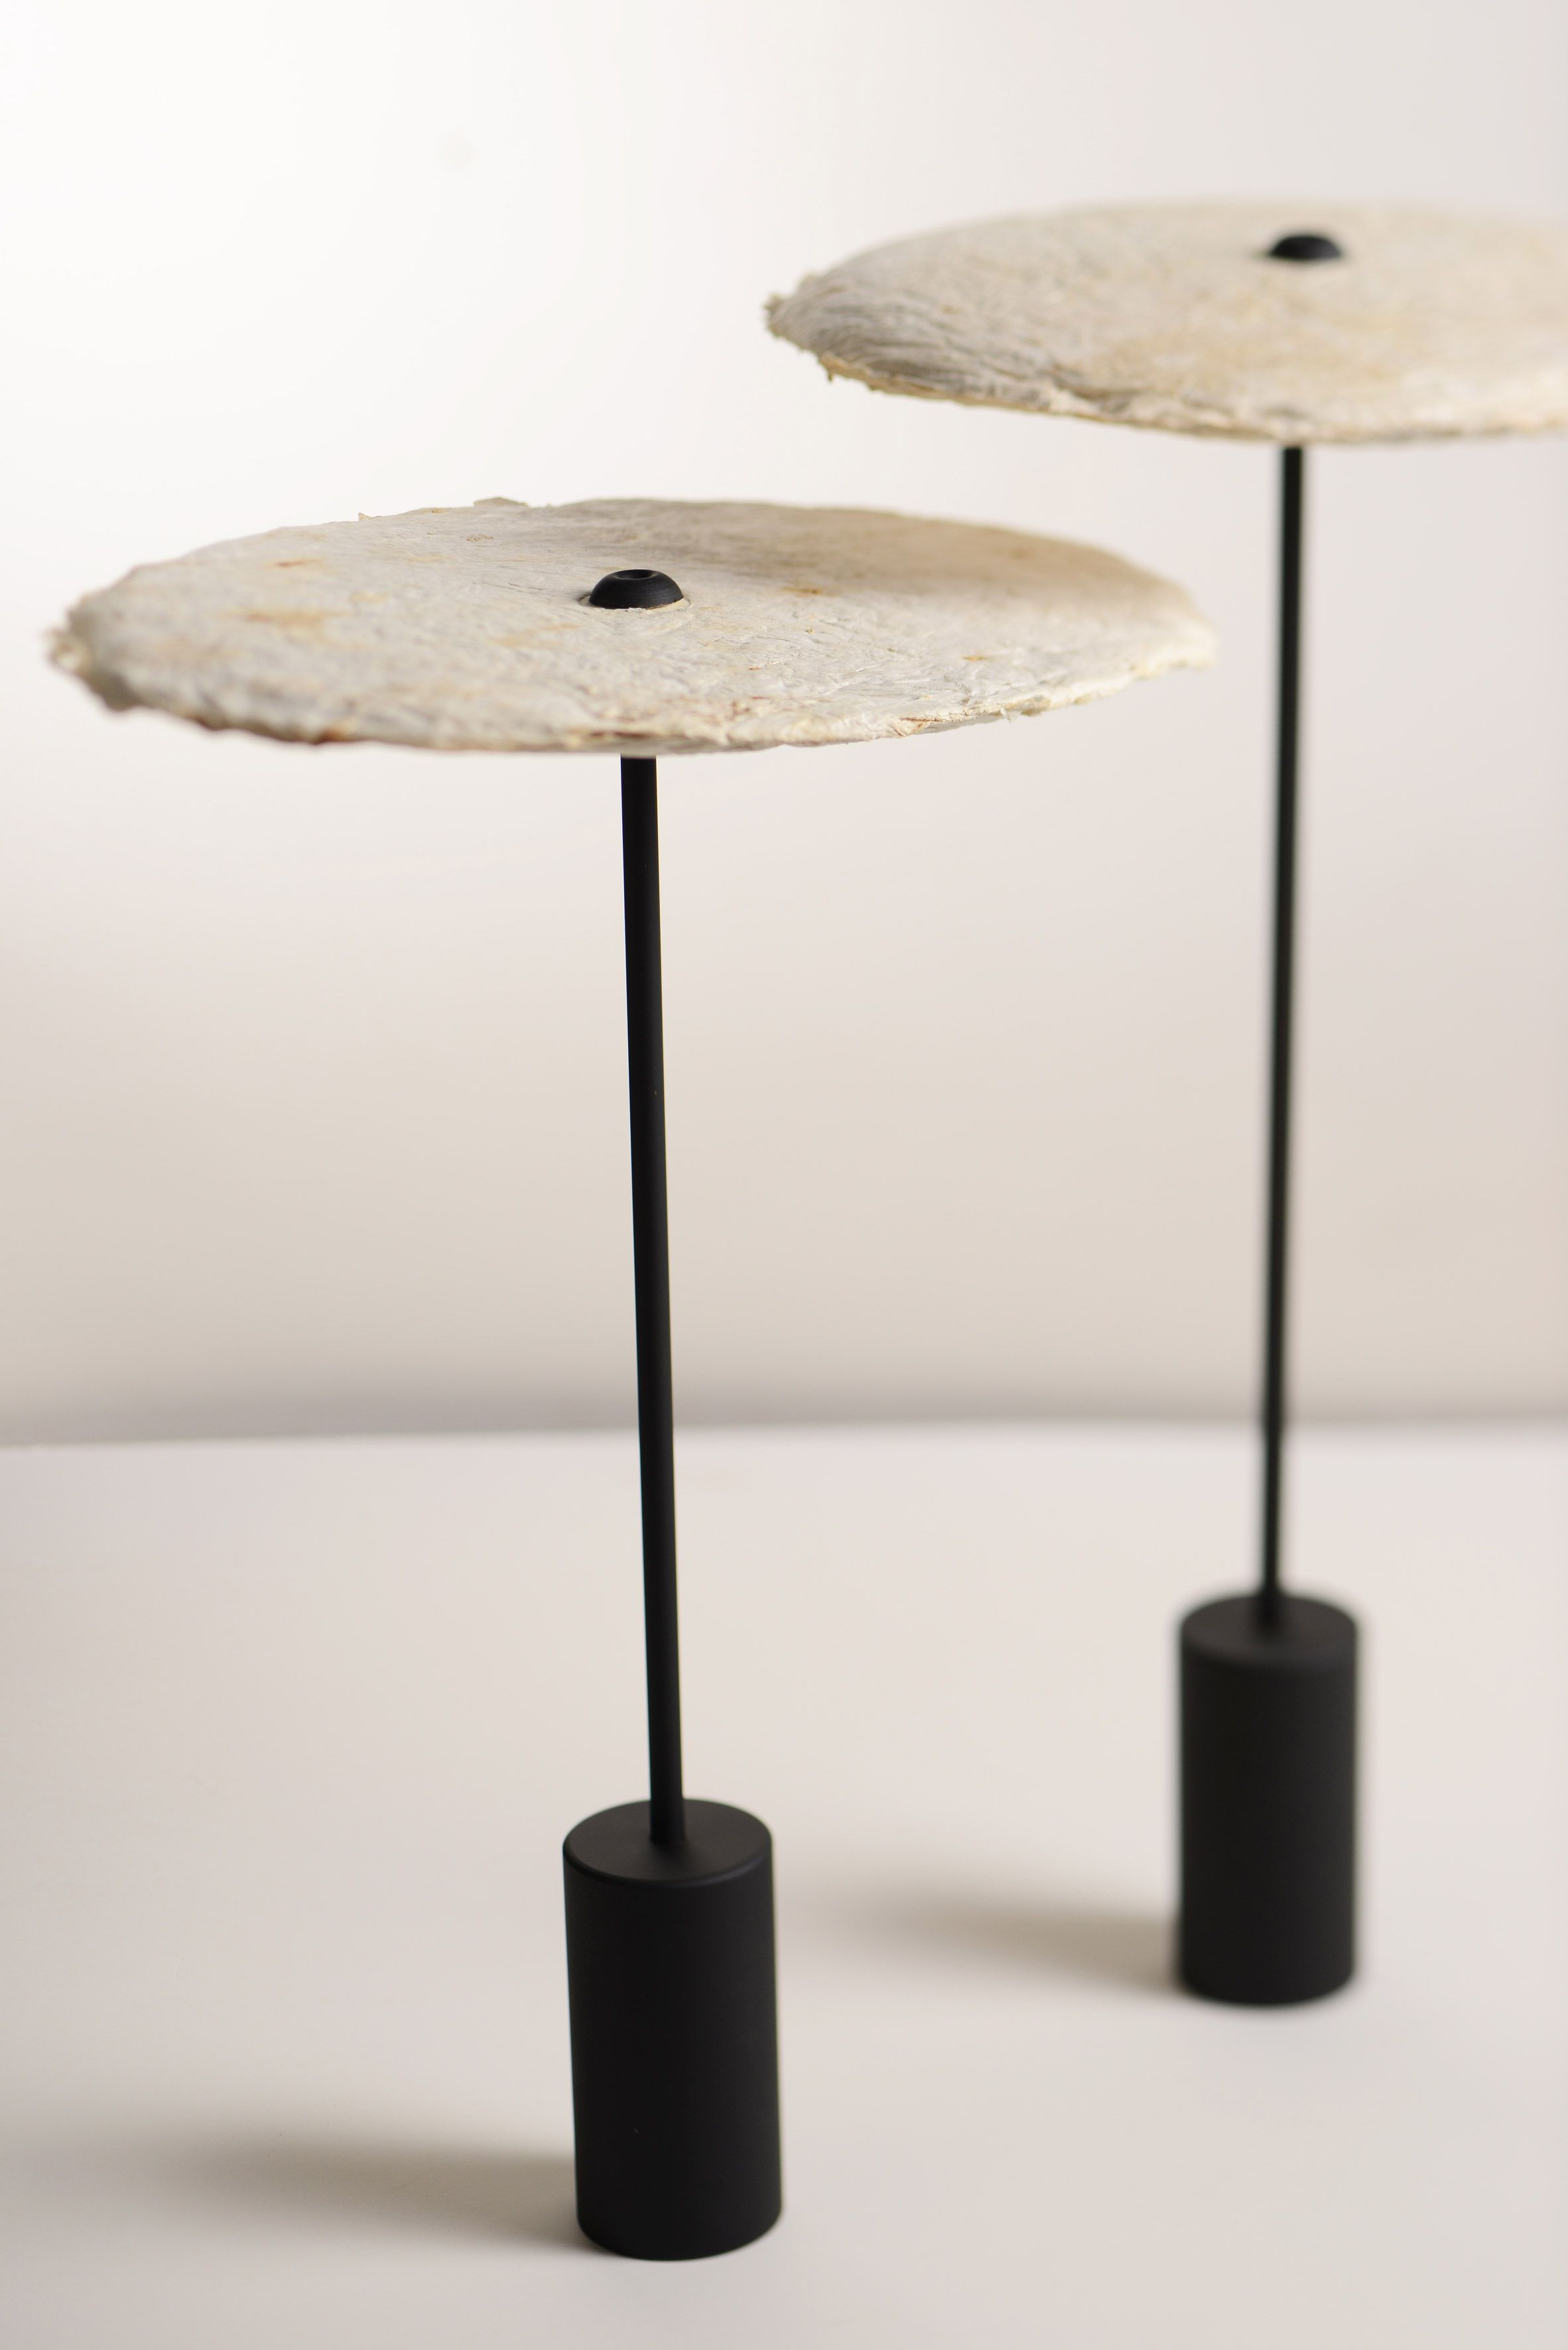 Friendly Bedroom Study Table Light Nordic Personality Creative Mushroom Table Lamp Light Fixtures Bedroom Lights Ceiling Lights & Fans